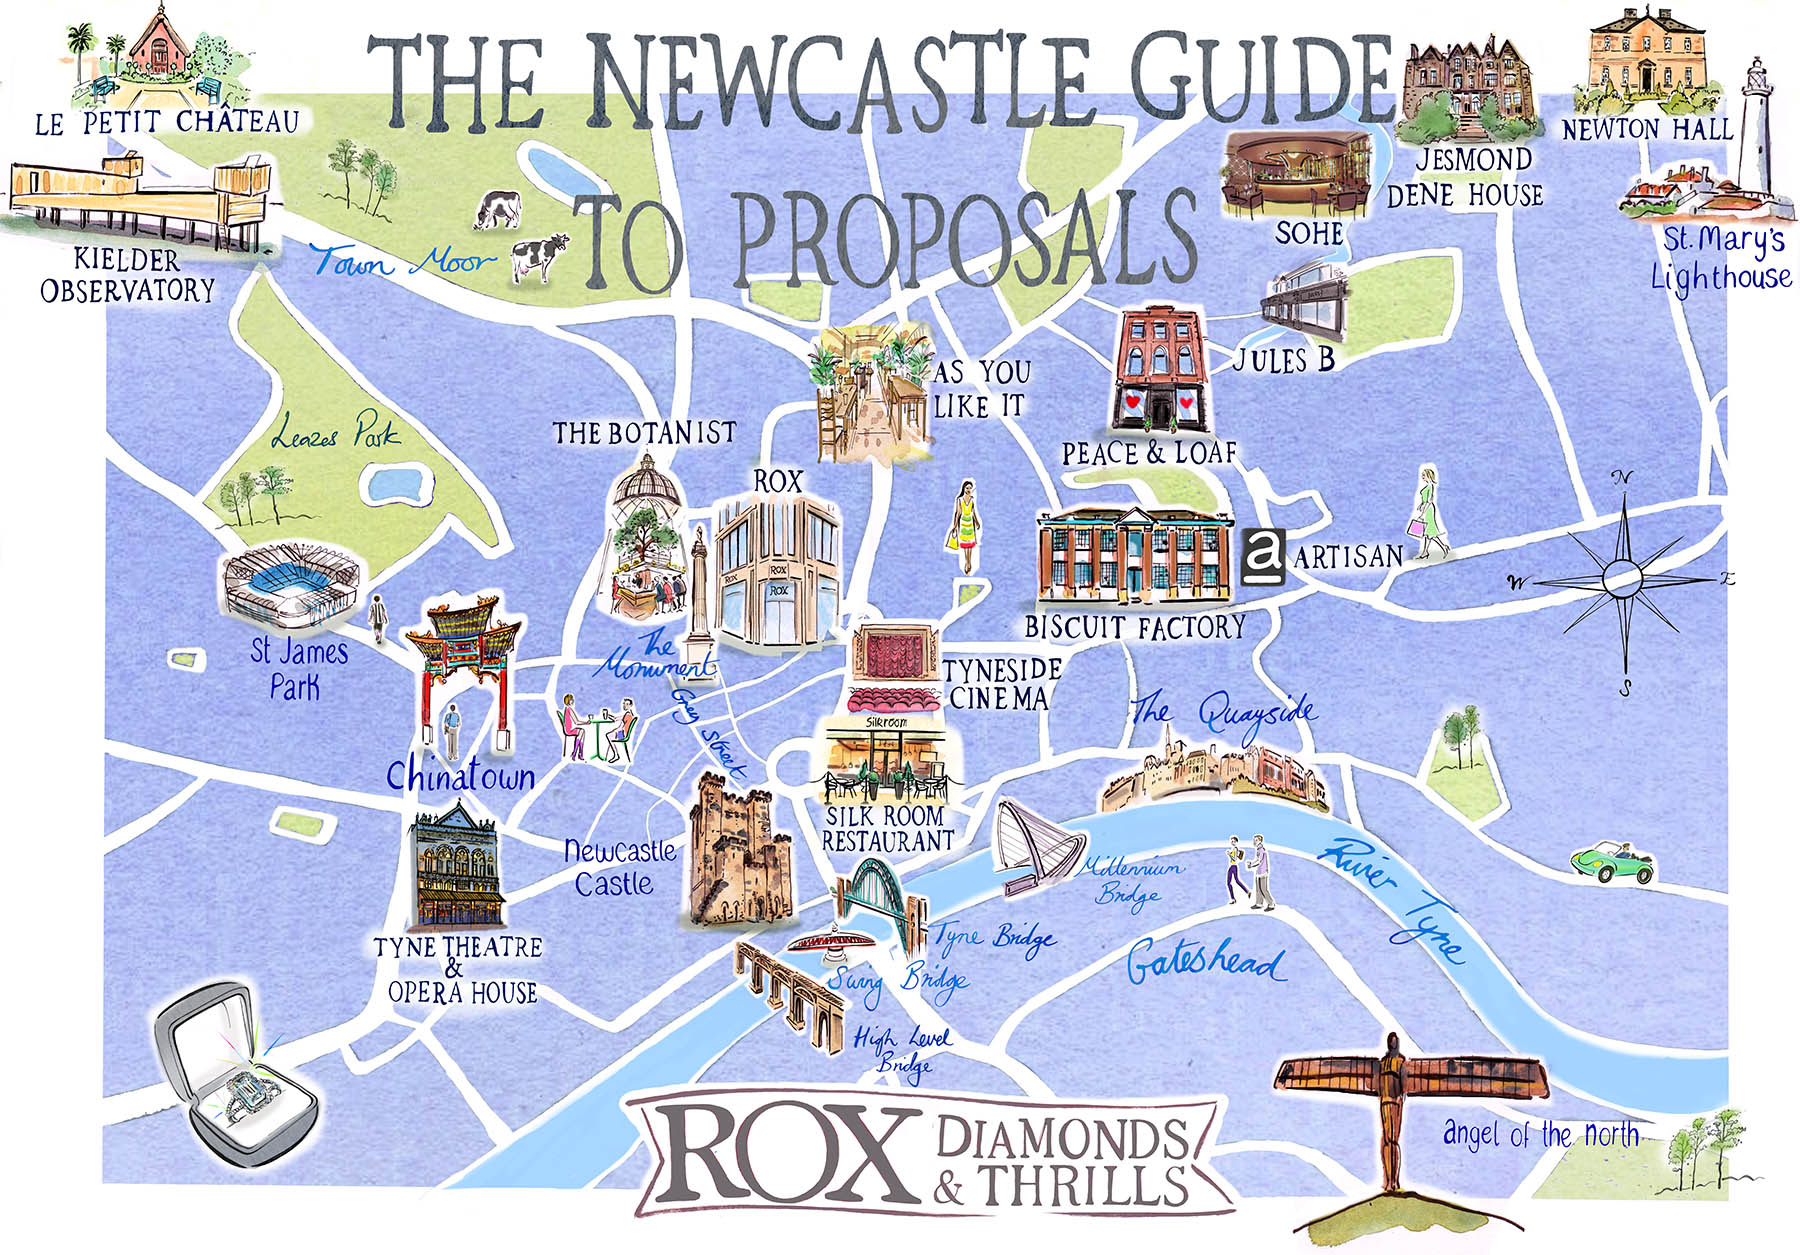 The Newcastle Guide To Proposals By ROX